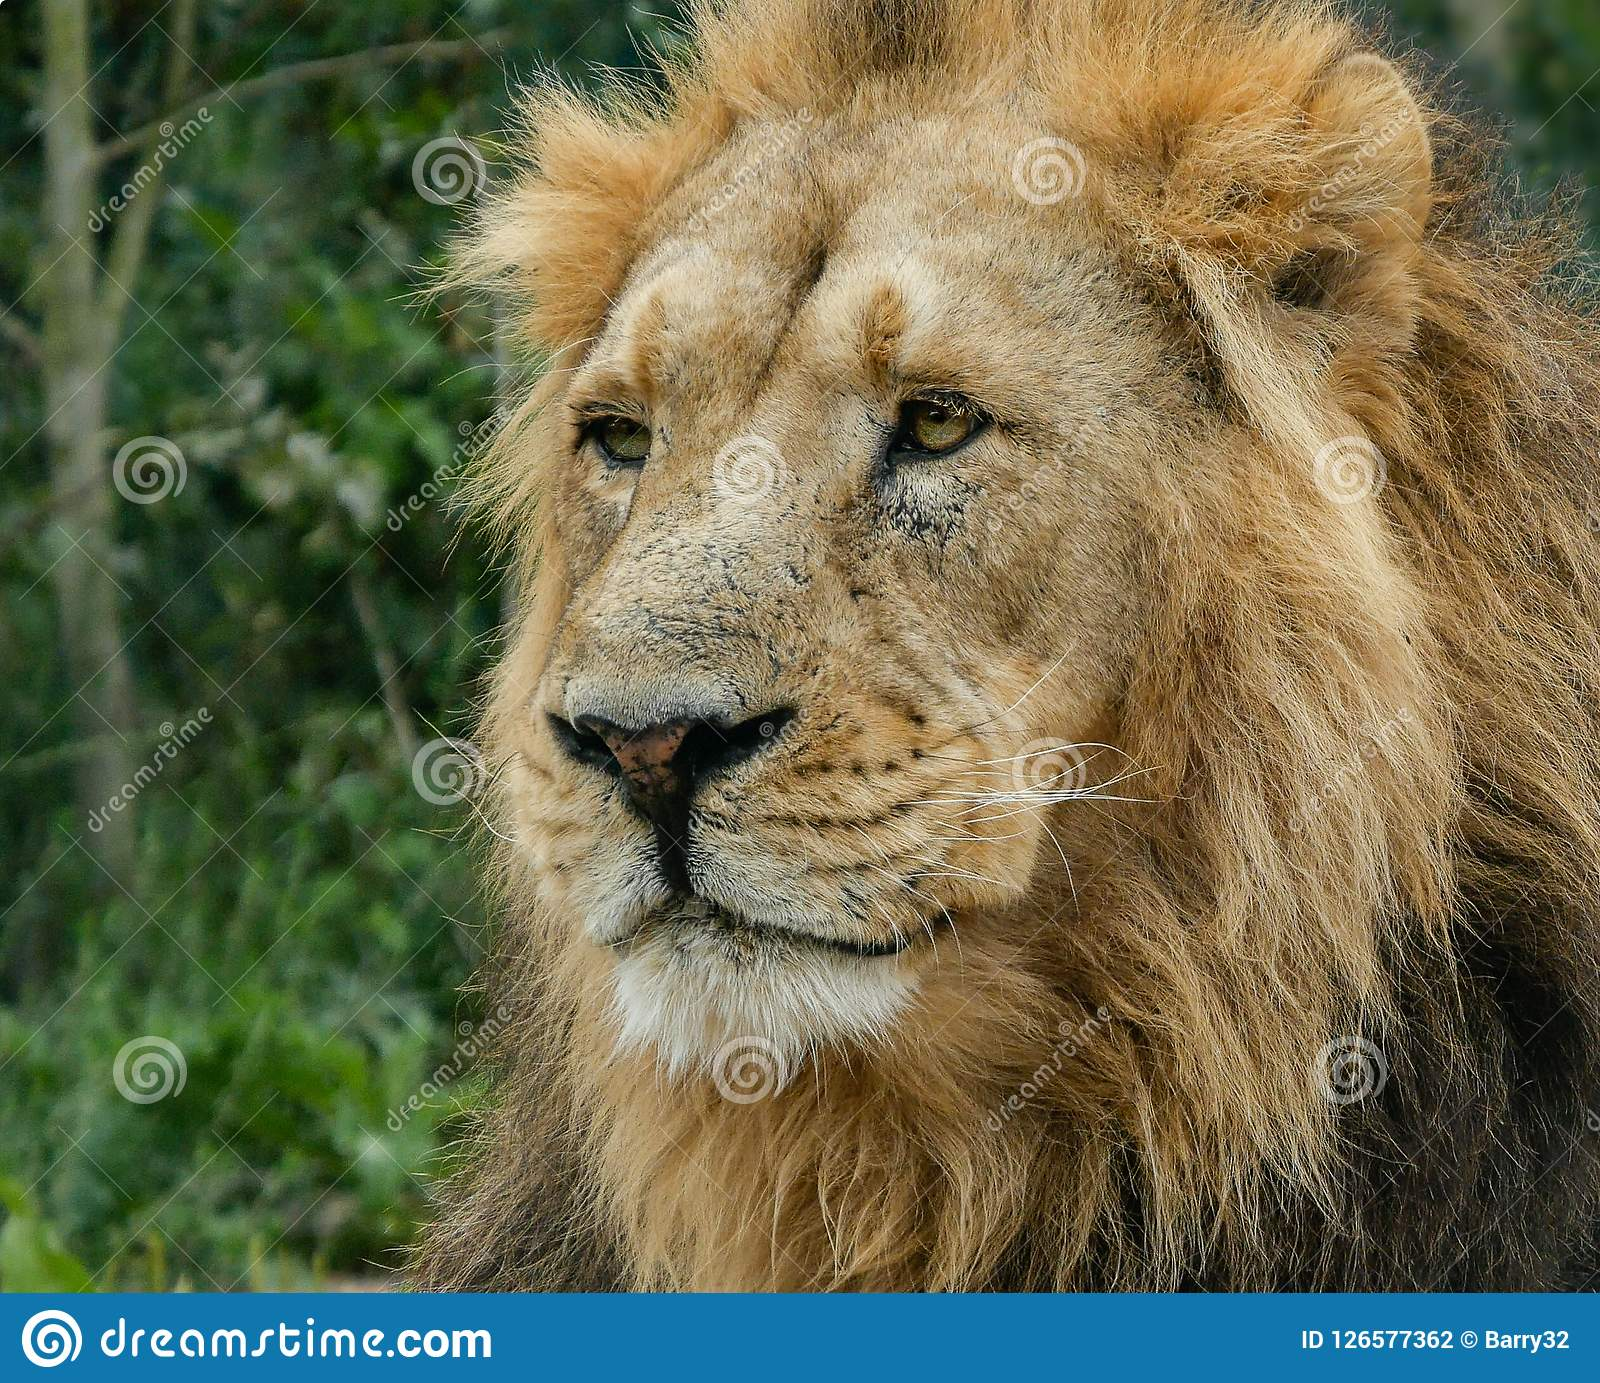 Adult male Asiatic Lion portrait, head and face, looking off into the distance with foliage background.